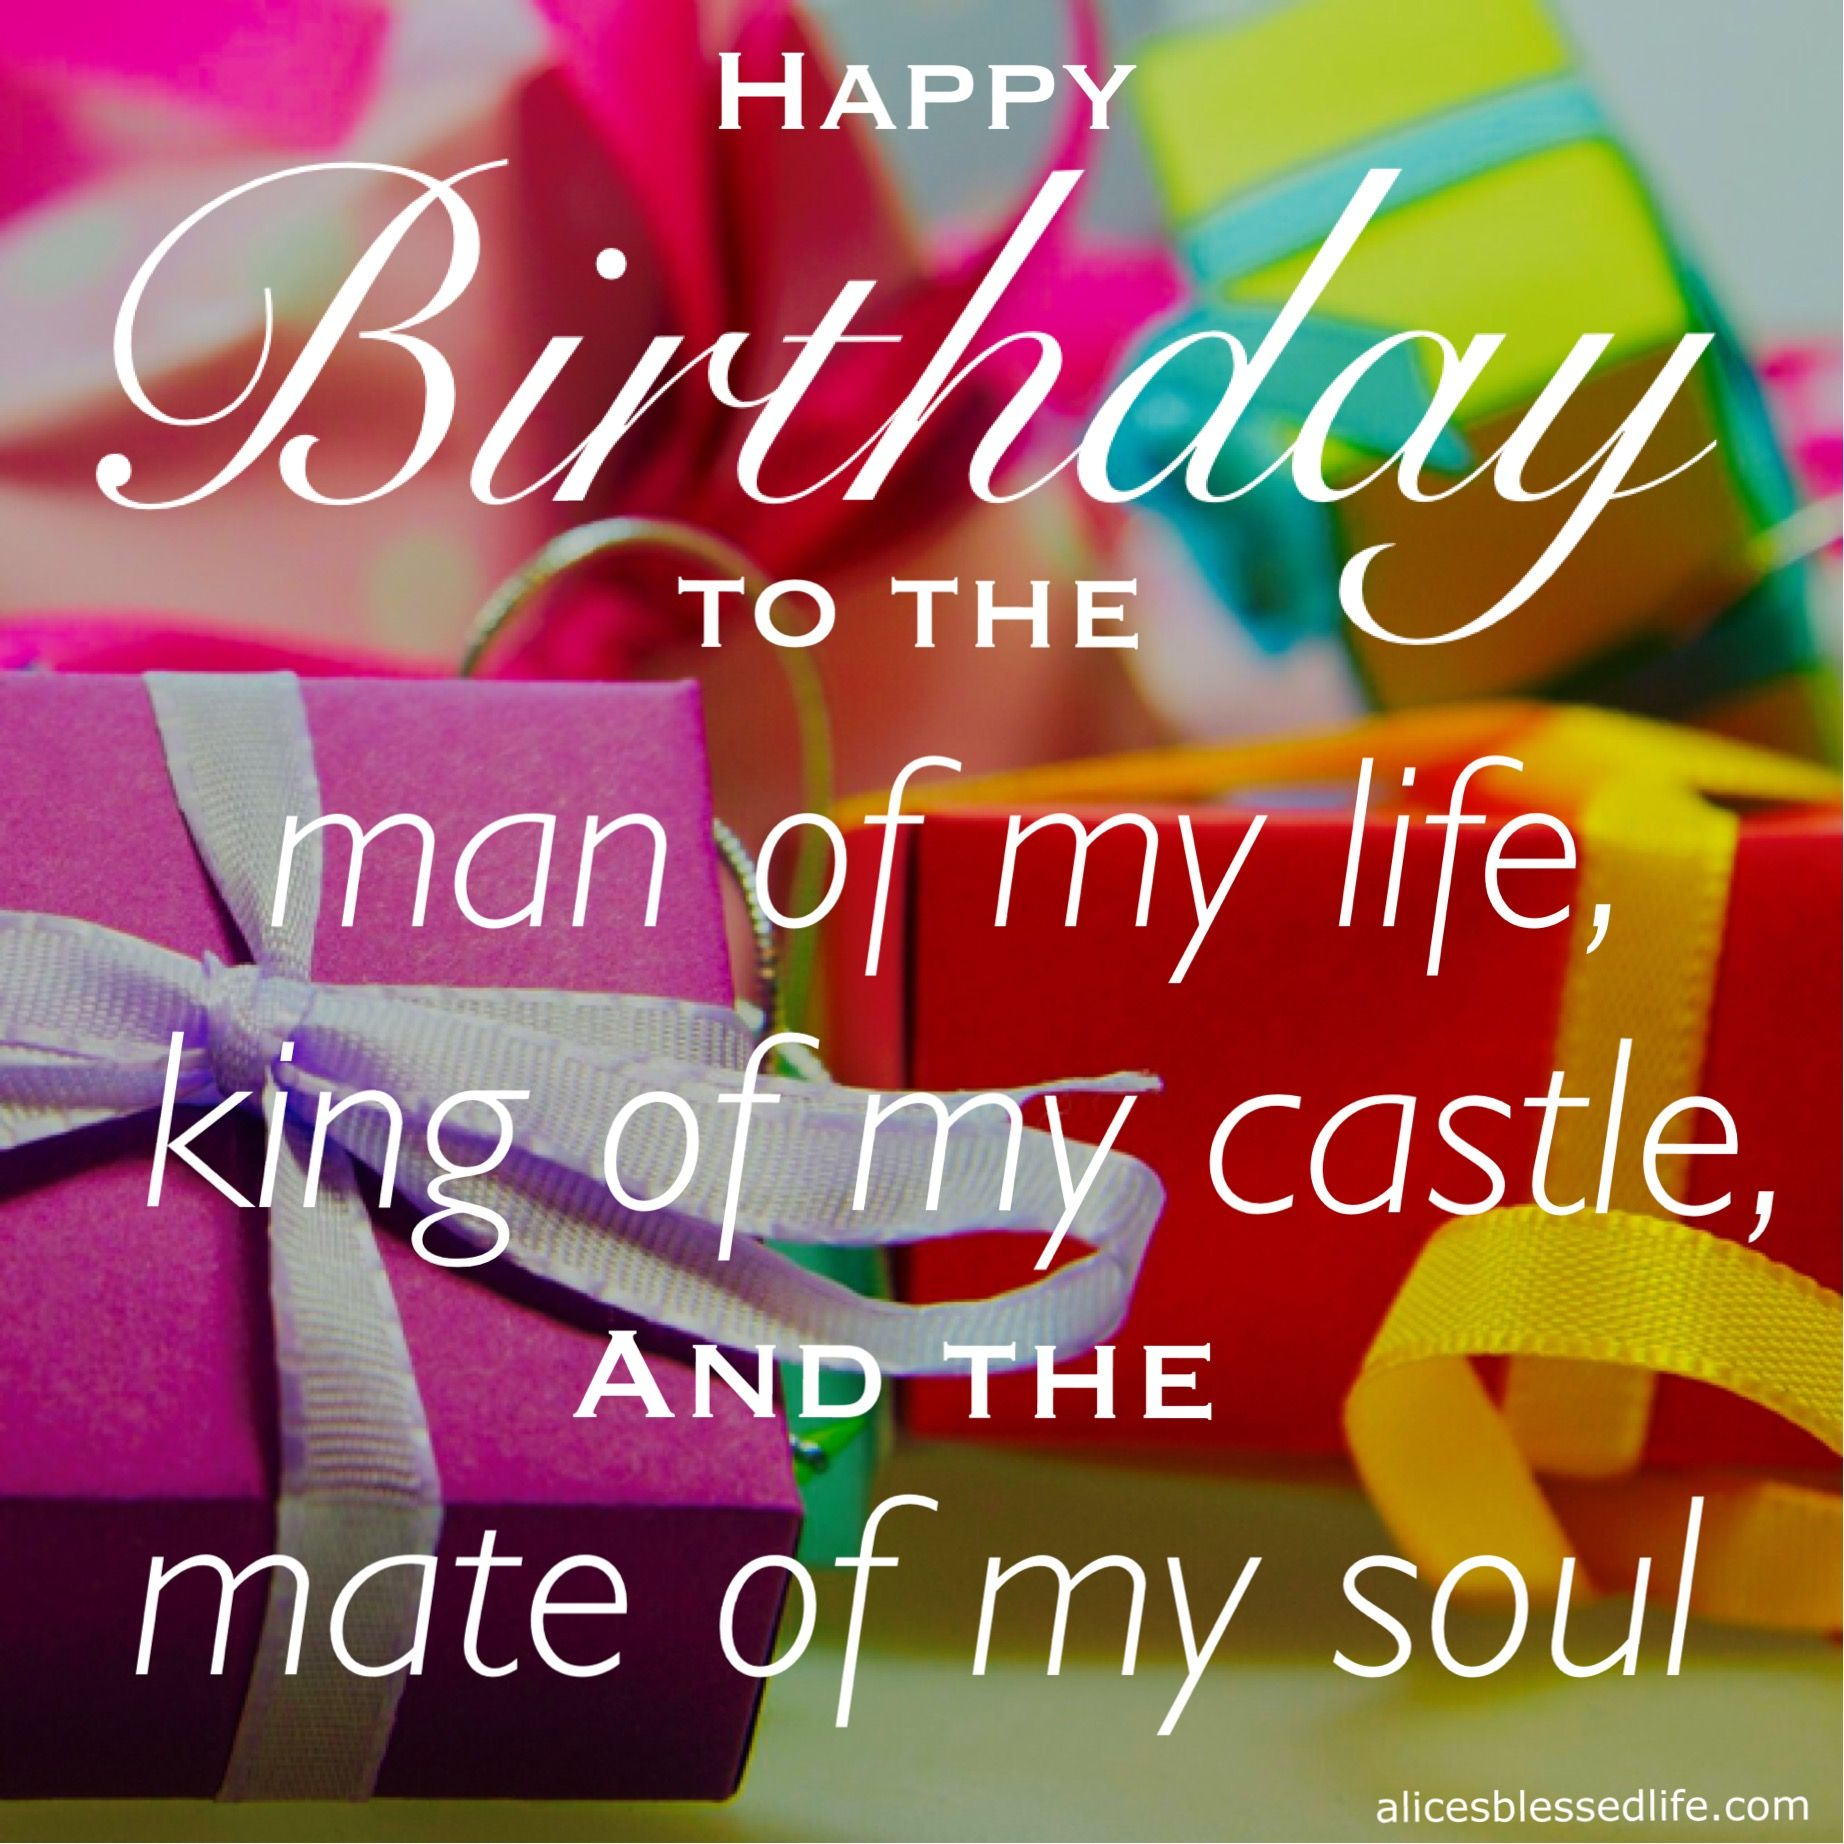 Happy Birthday Mr Shepherd Quotes Birthday Quotes Birthday